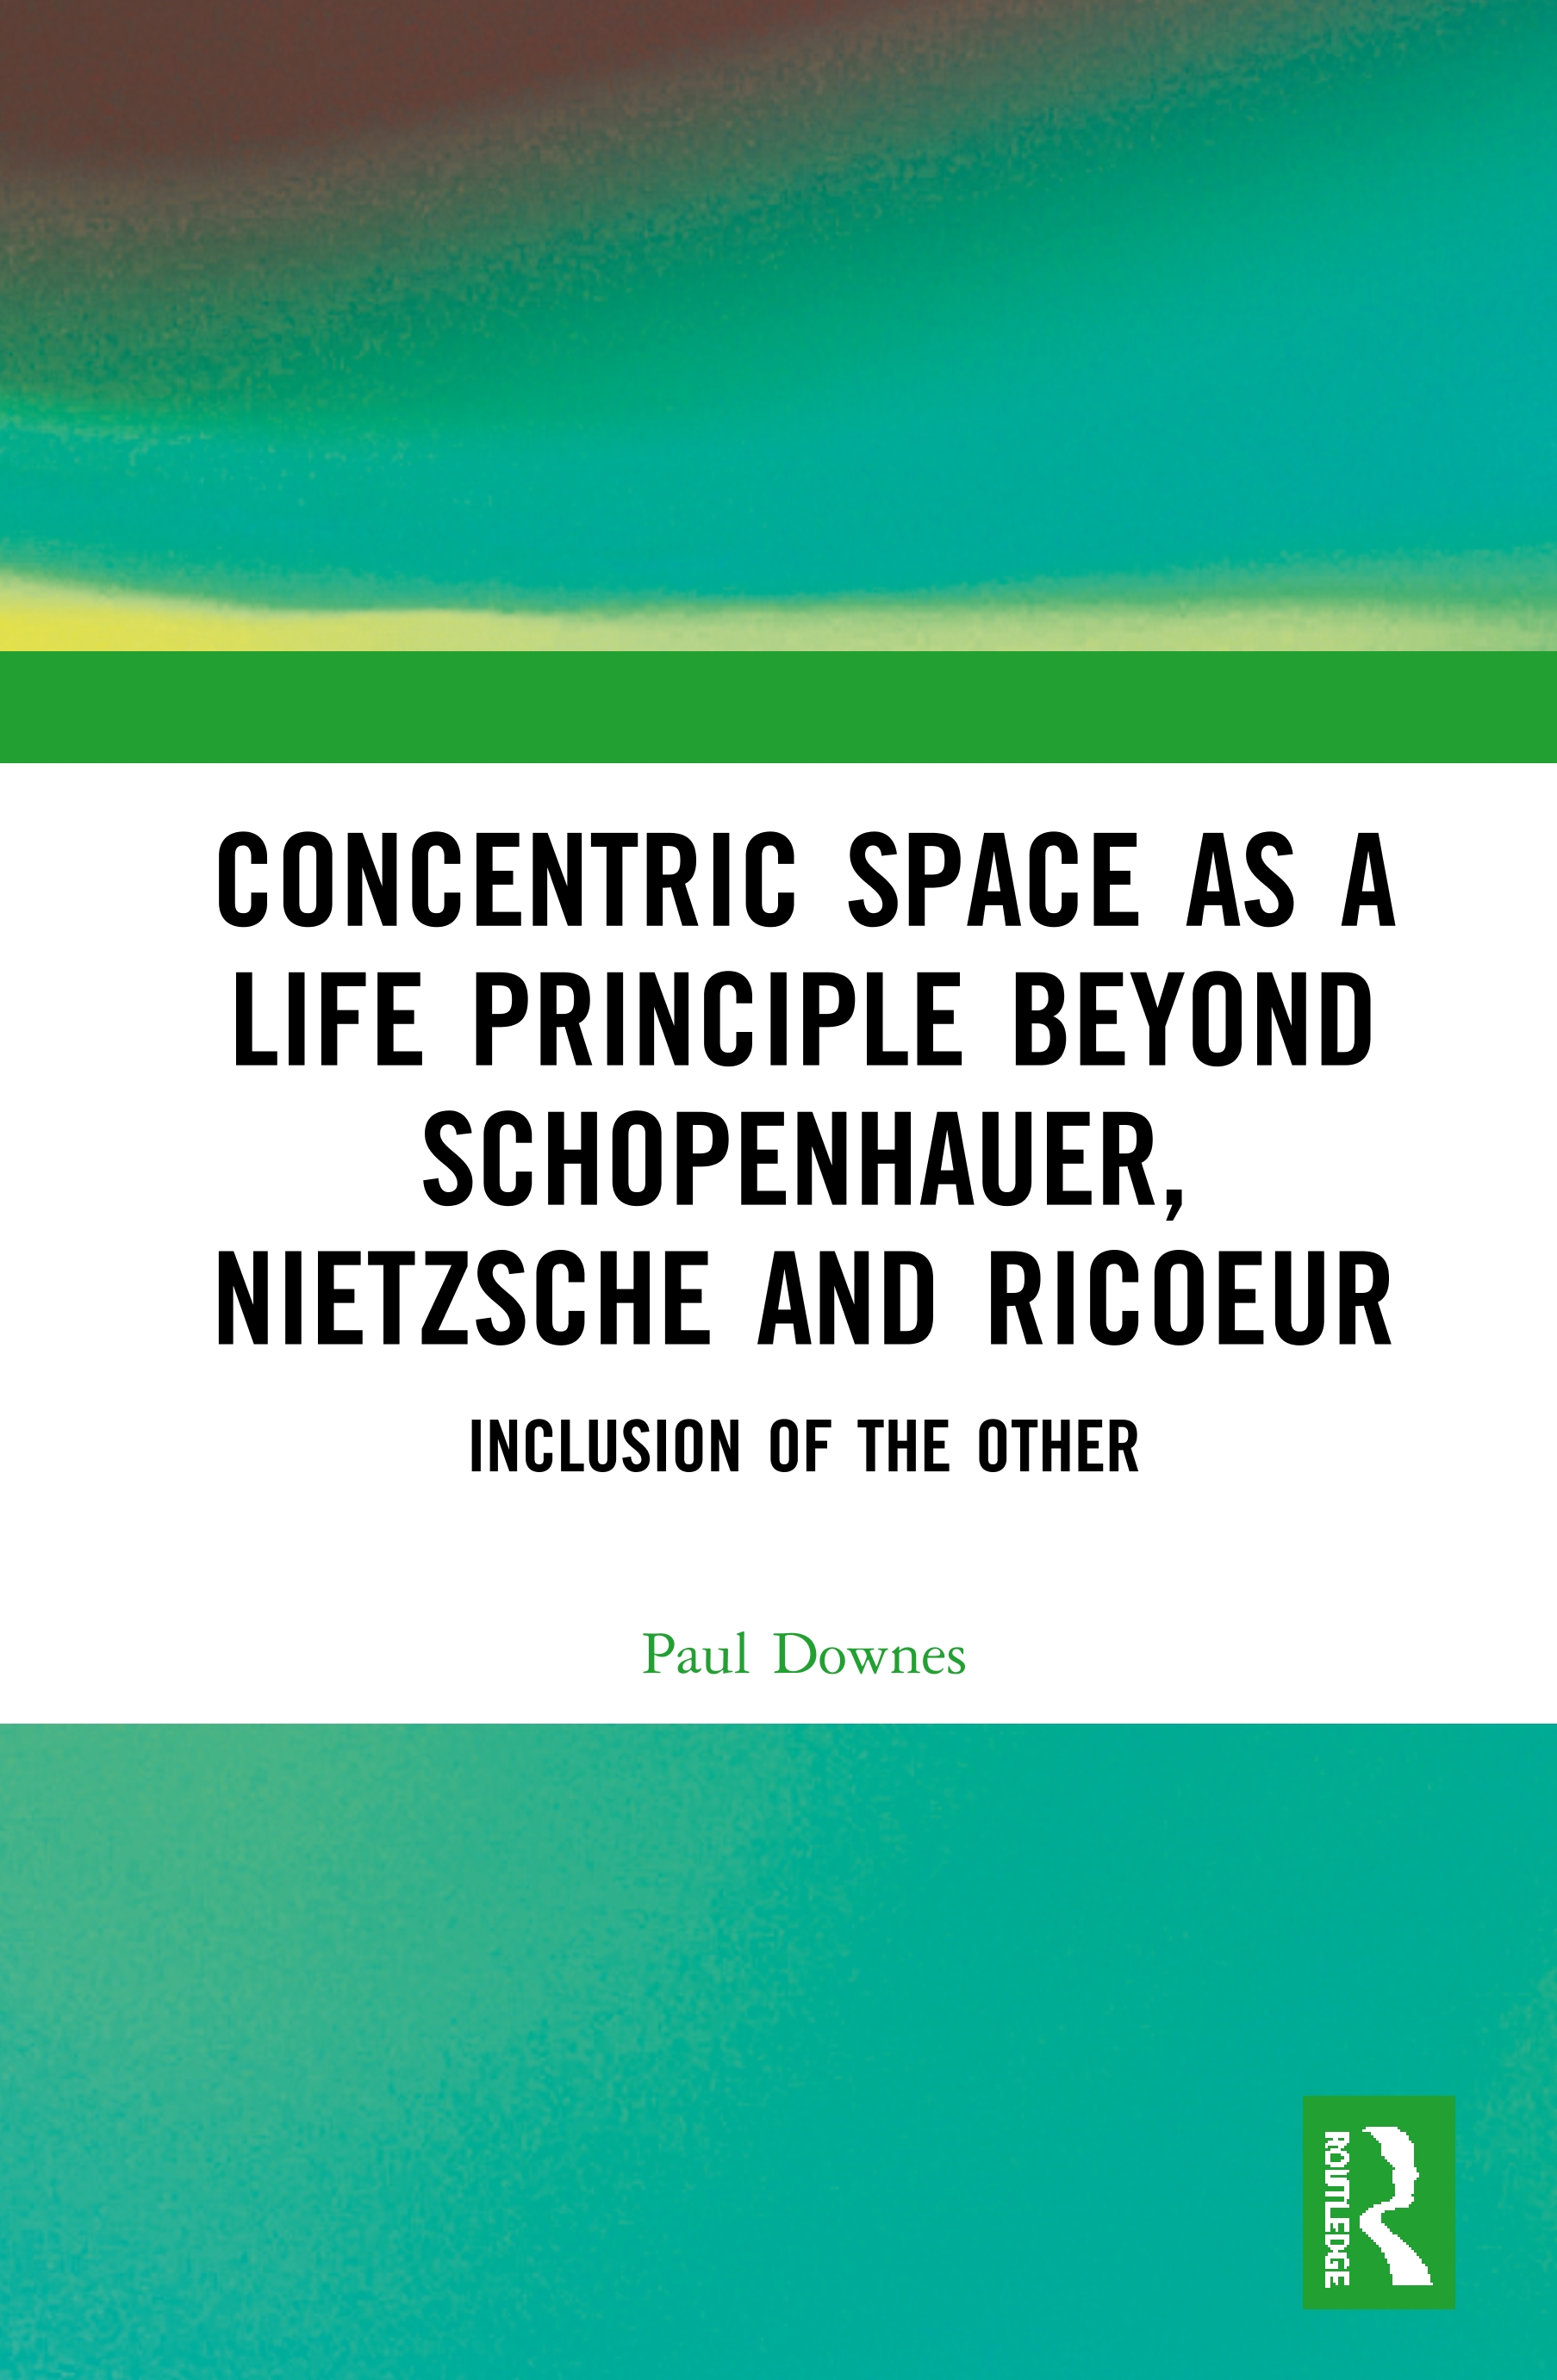 Concentric Space as a Life Principle beyond Schopenhauer, Nietzsche and Ricoeur Book Cover